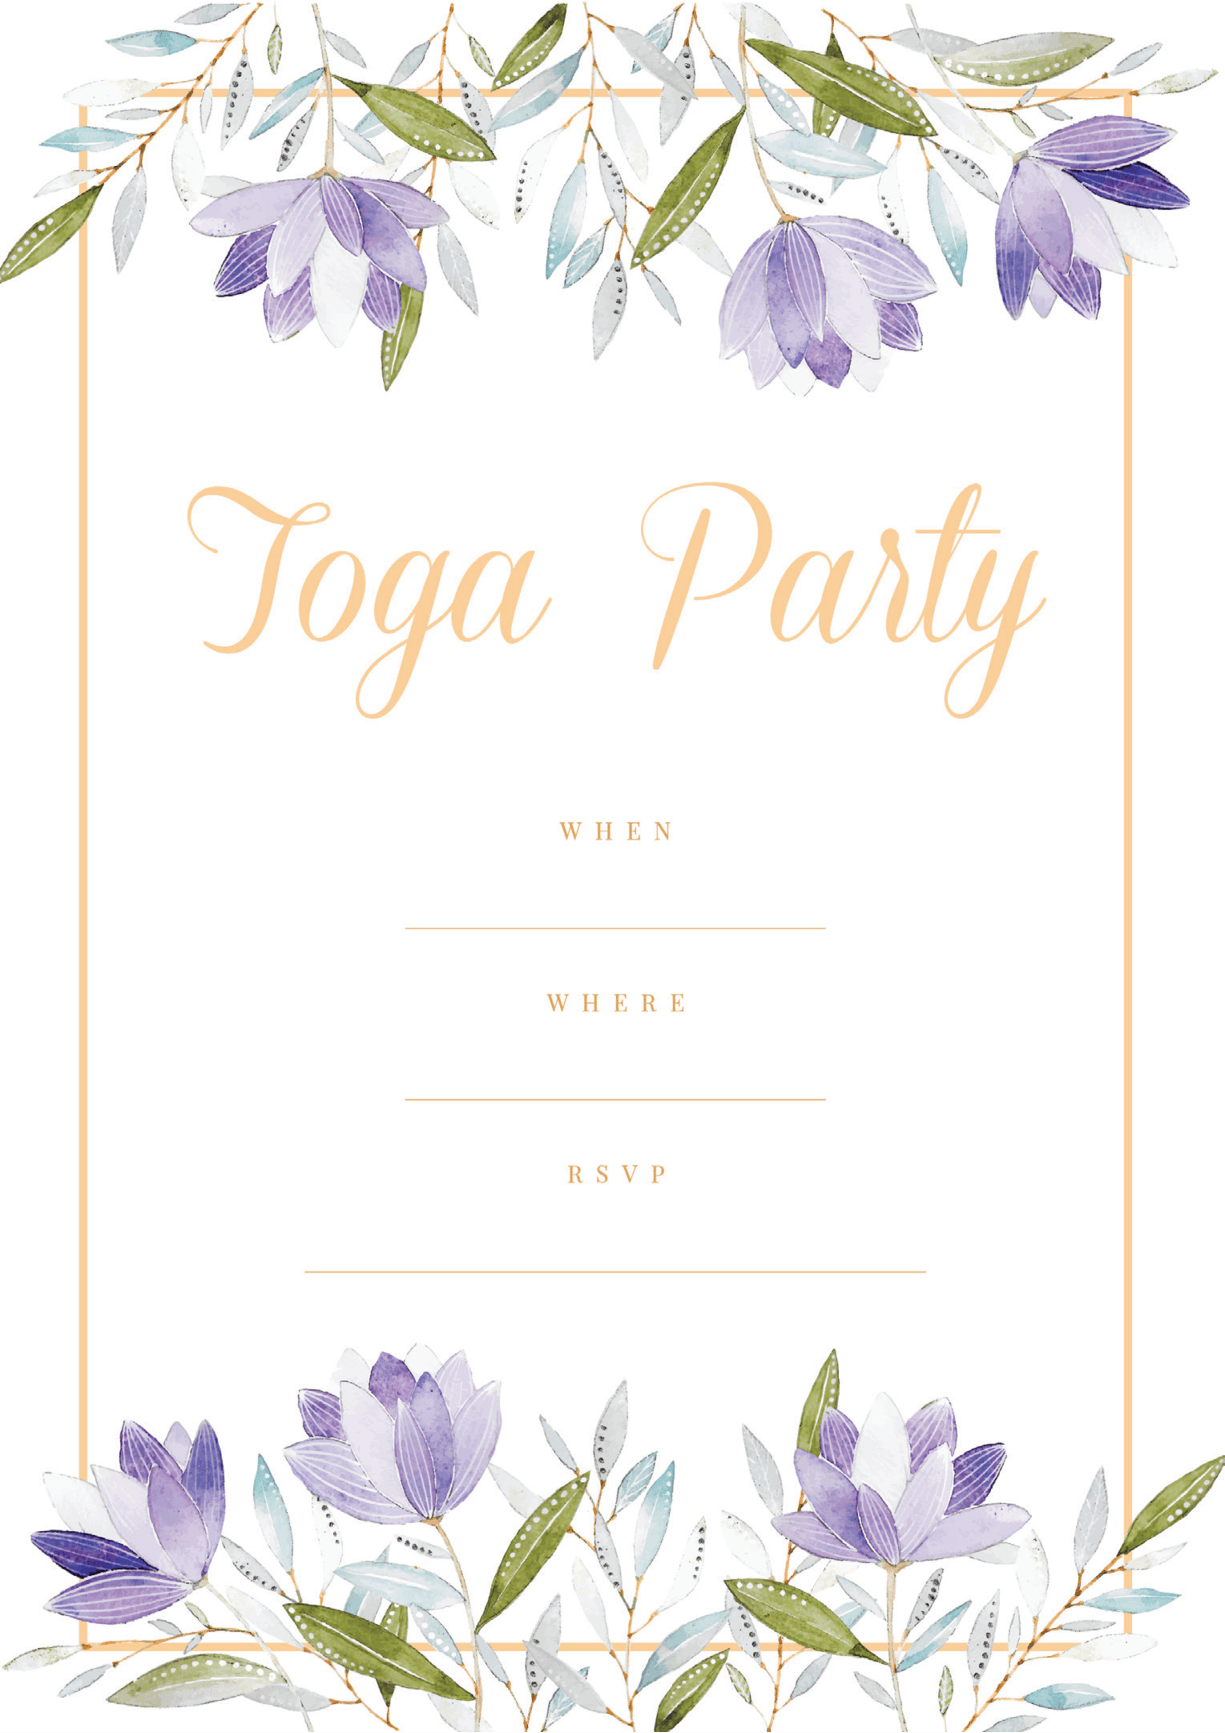 Toga party invitations 4k wallpapers toga party invitations free printables college party toga party modern 1 free toga party invitationshtml toga party invite design templates vectors duck stopboris Images